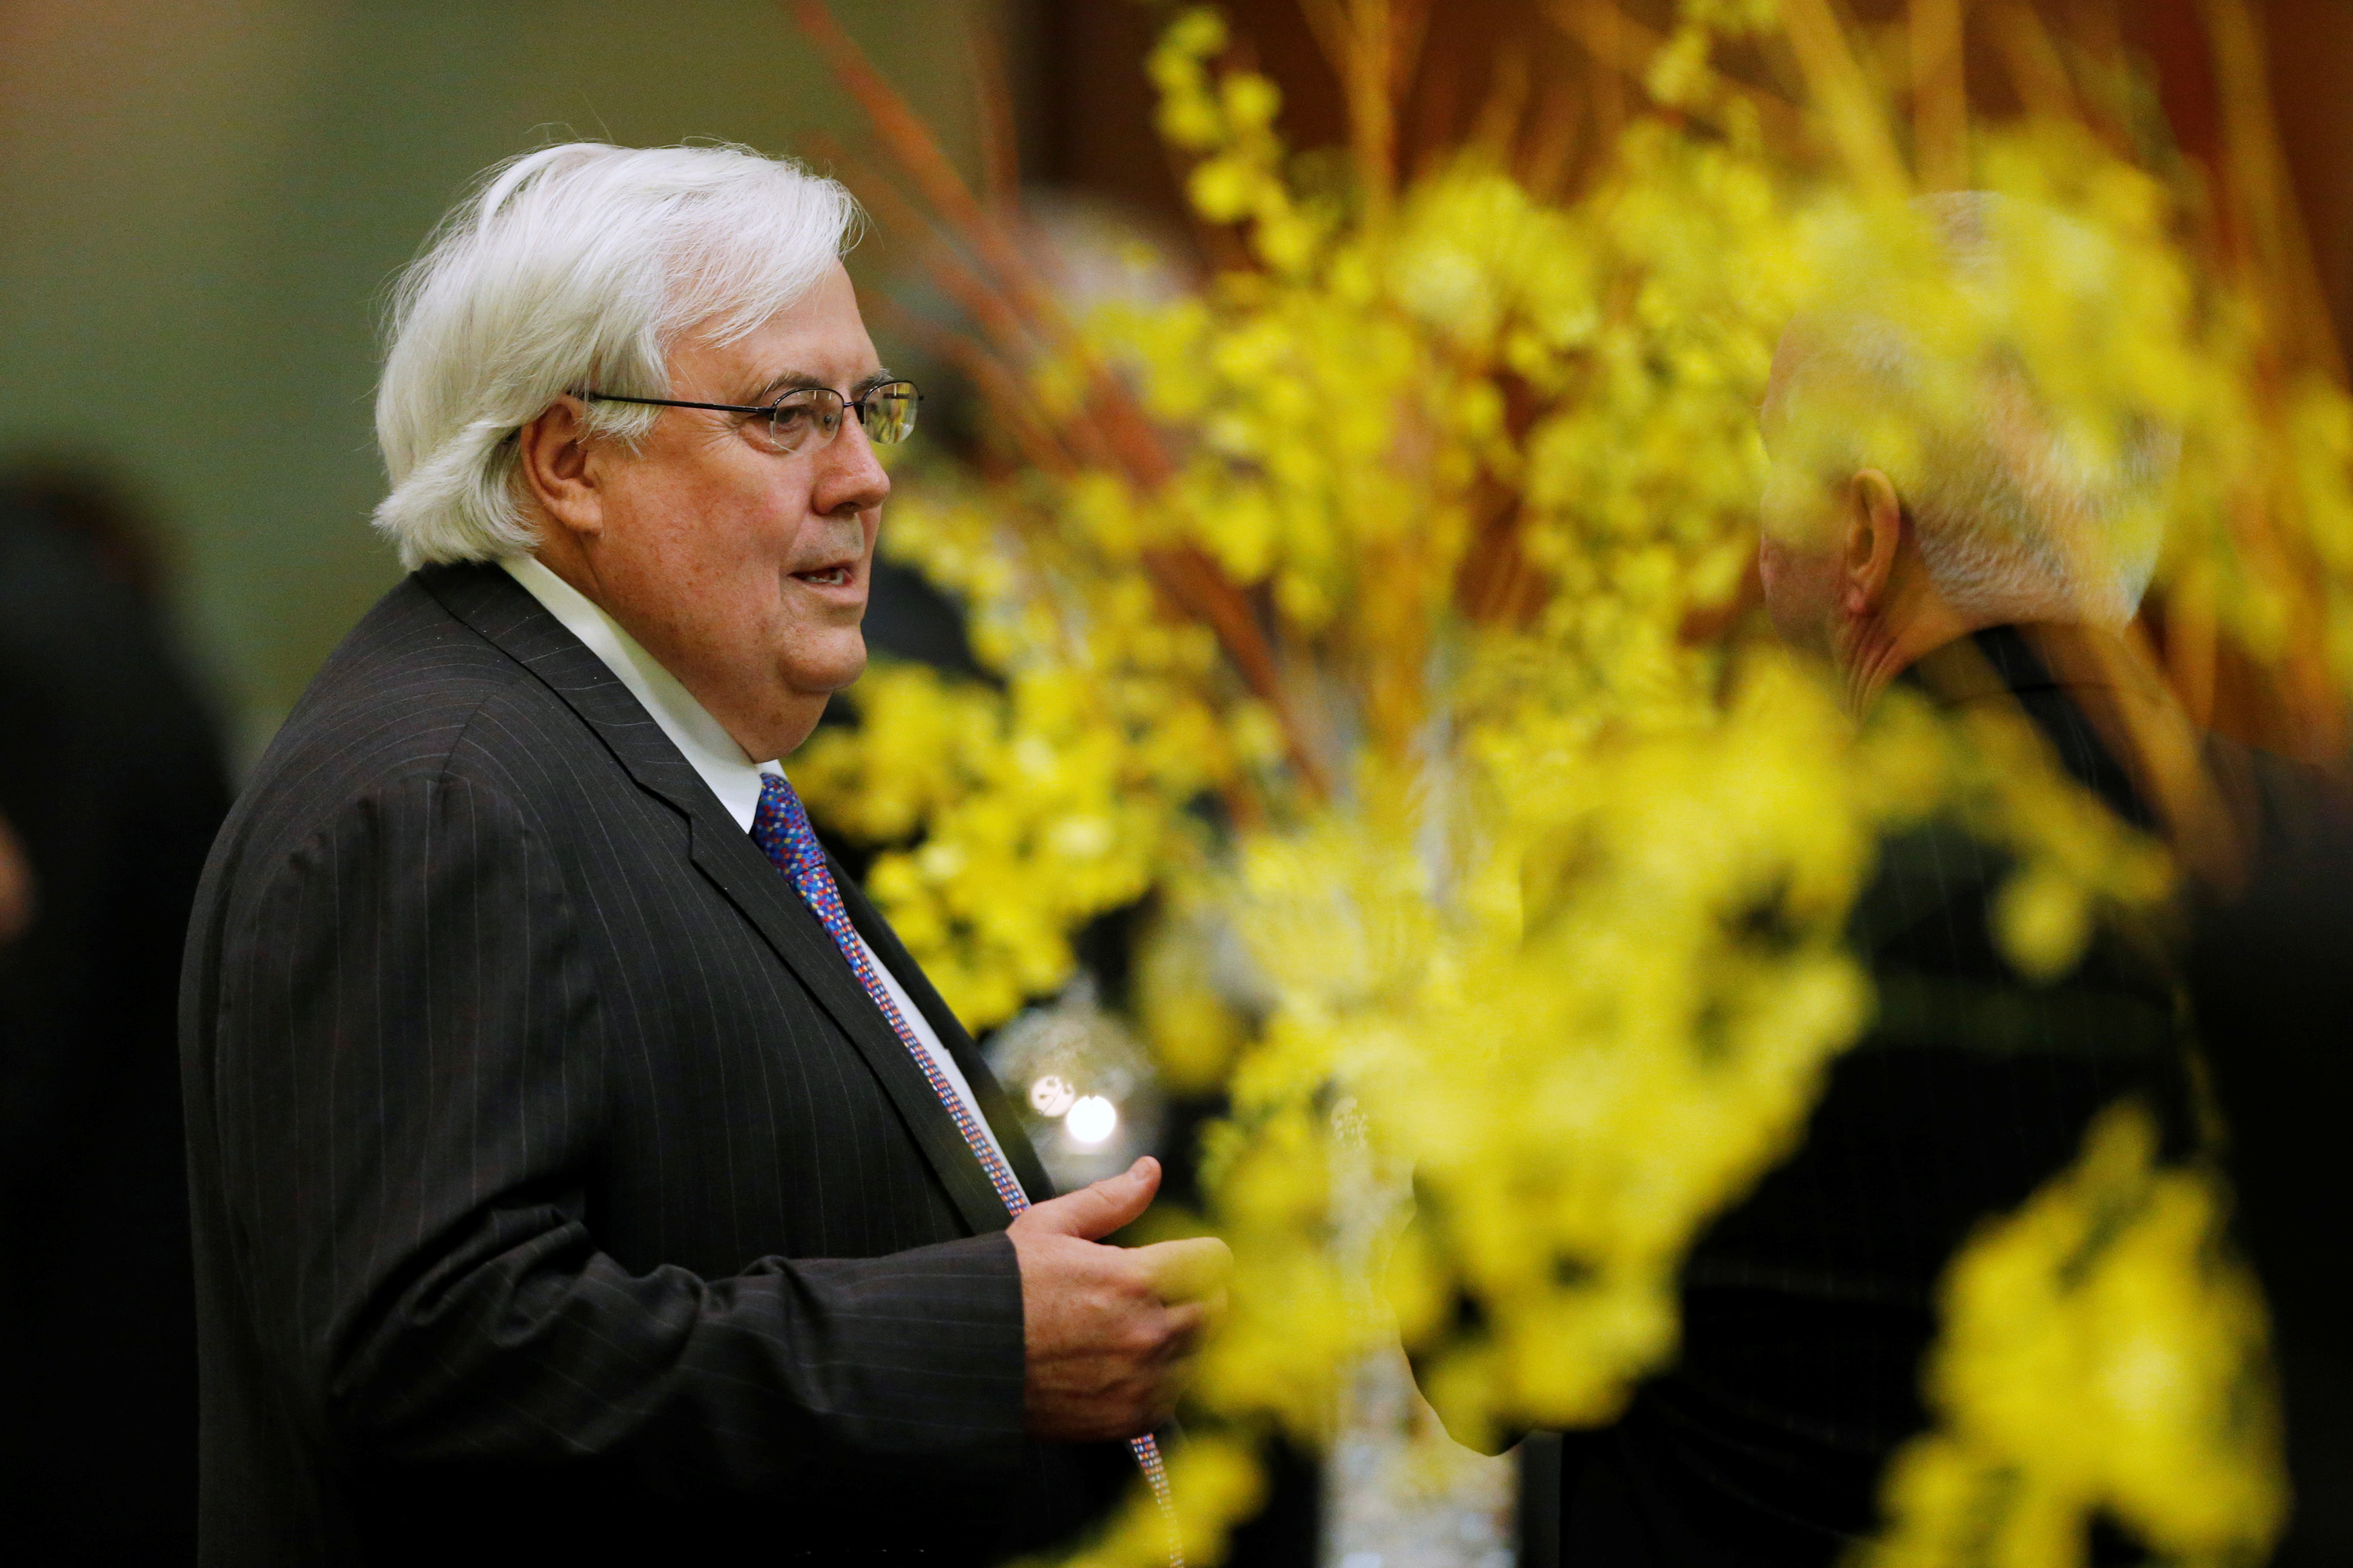 Australian businessman Clive Palmer is pictured during a dinner at Parliament House in Canberra, July 8, 2014. REUTERS/Jason Reed